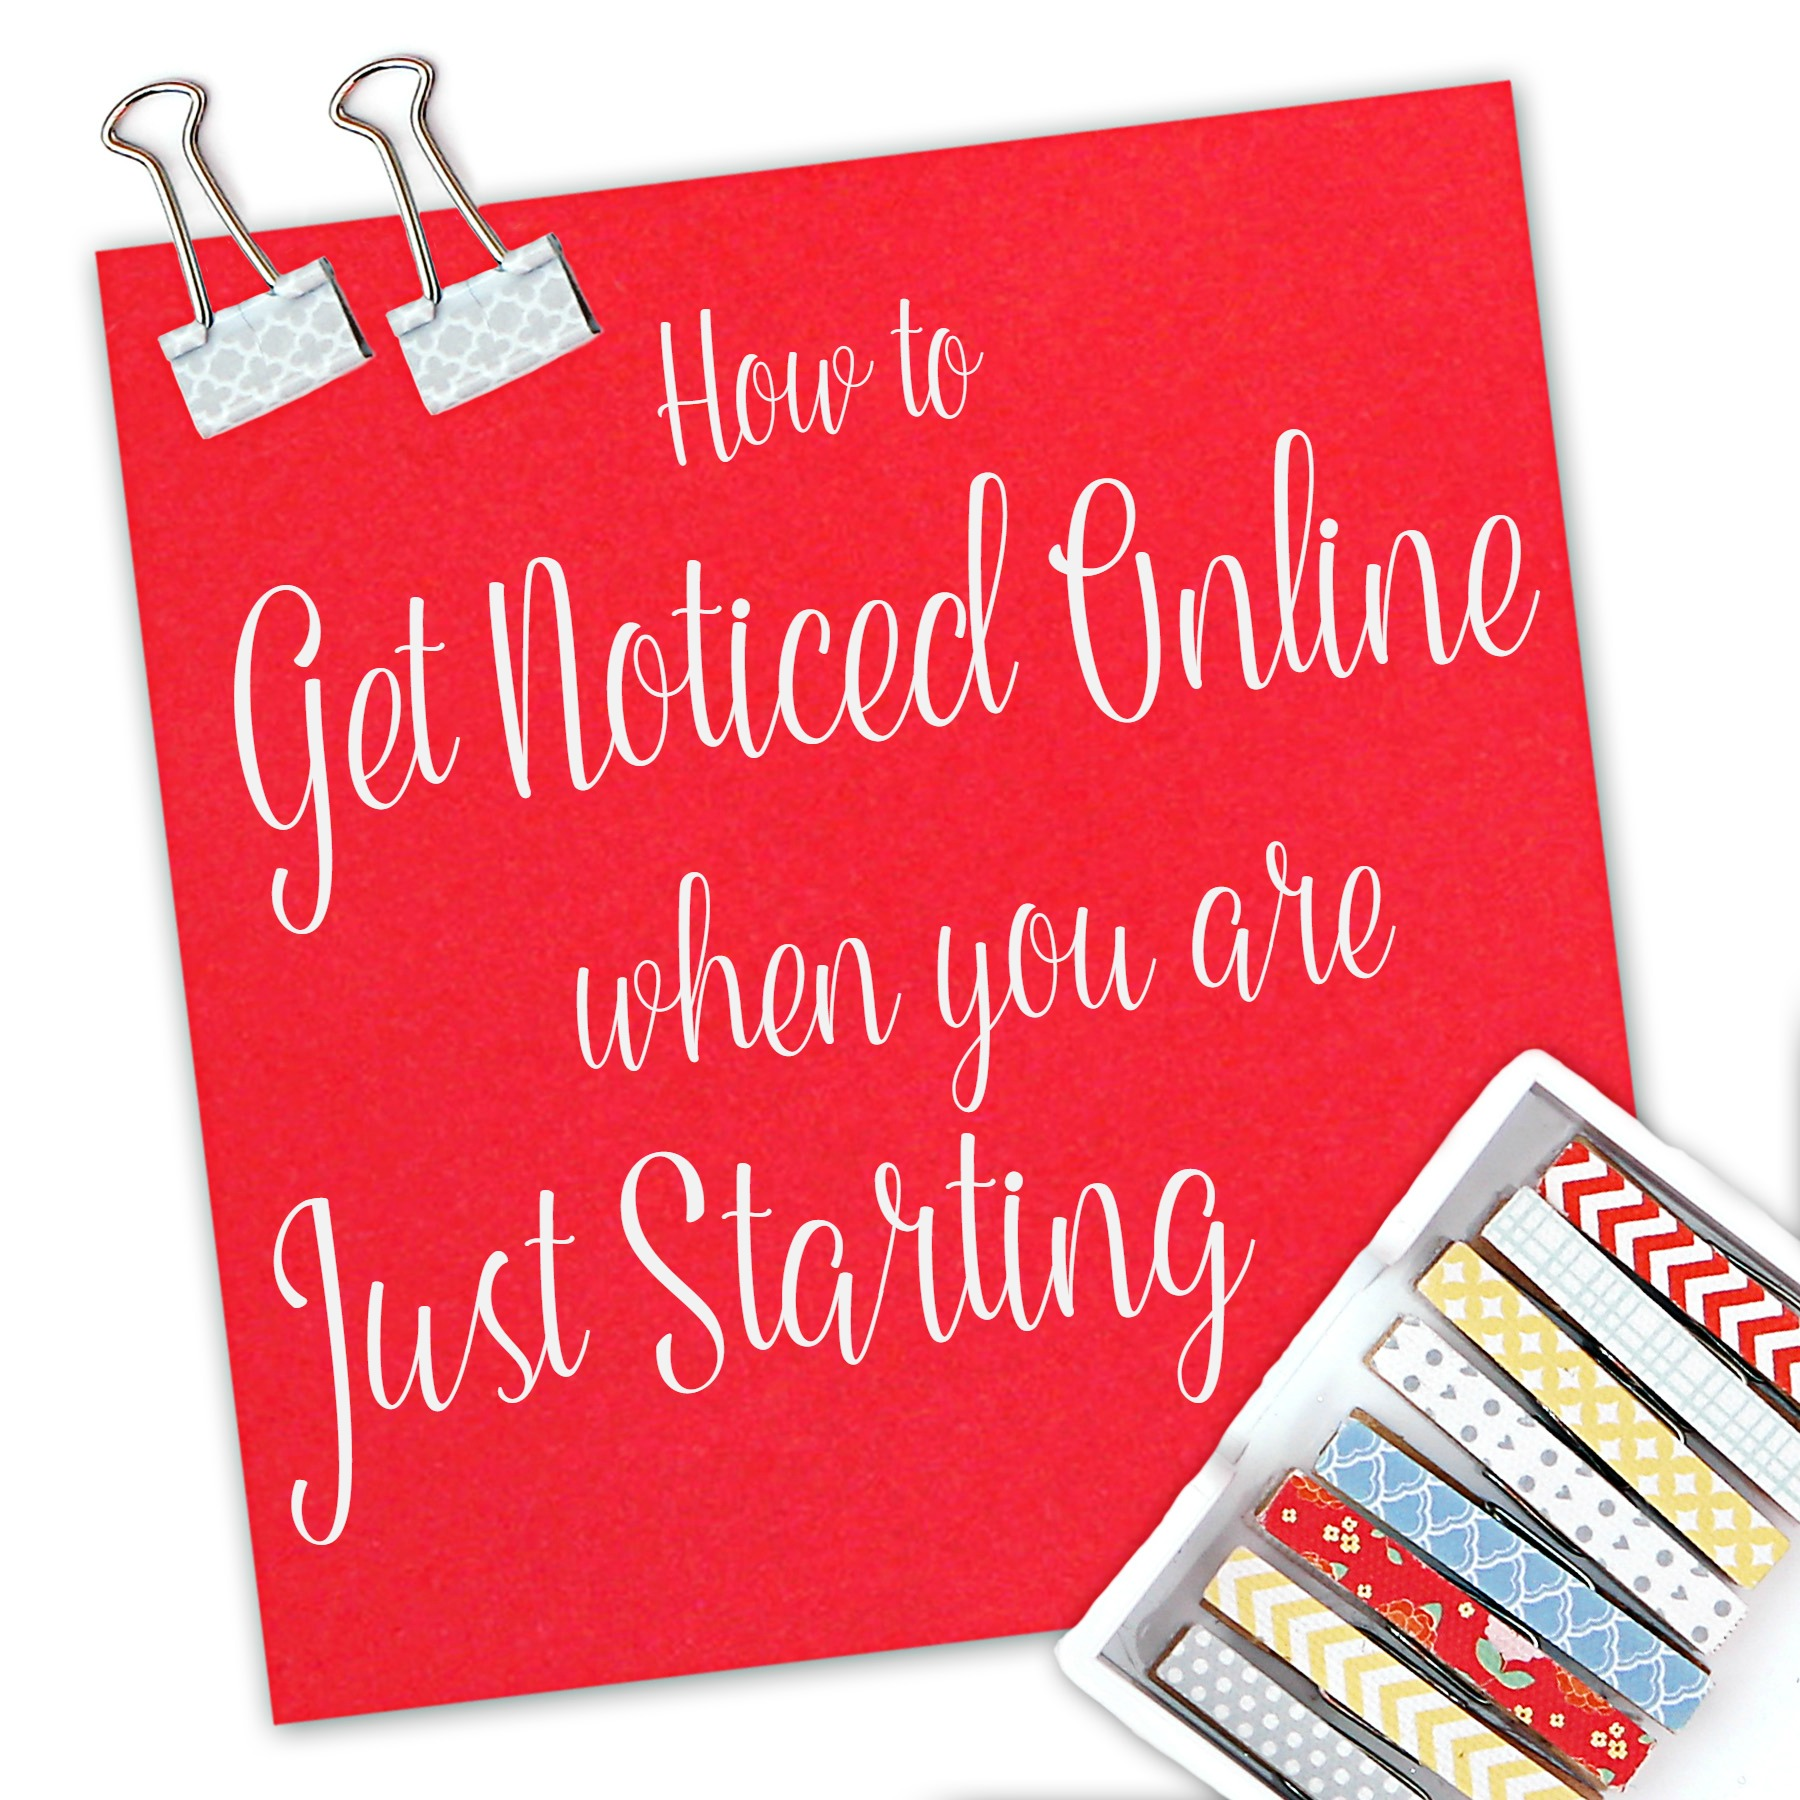 How to get noticed online dating